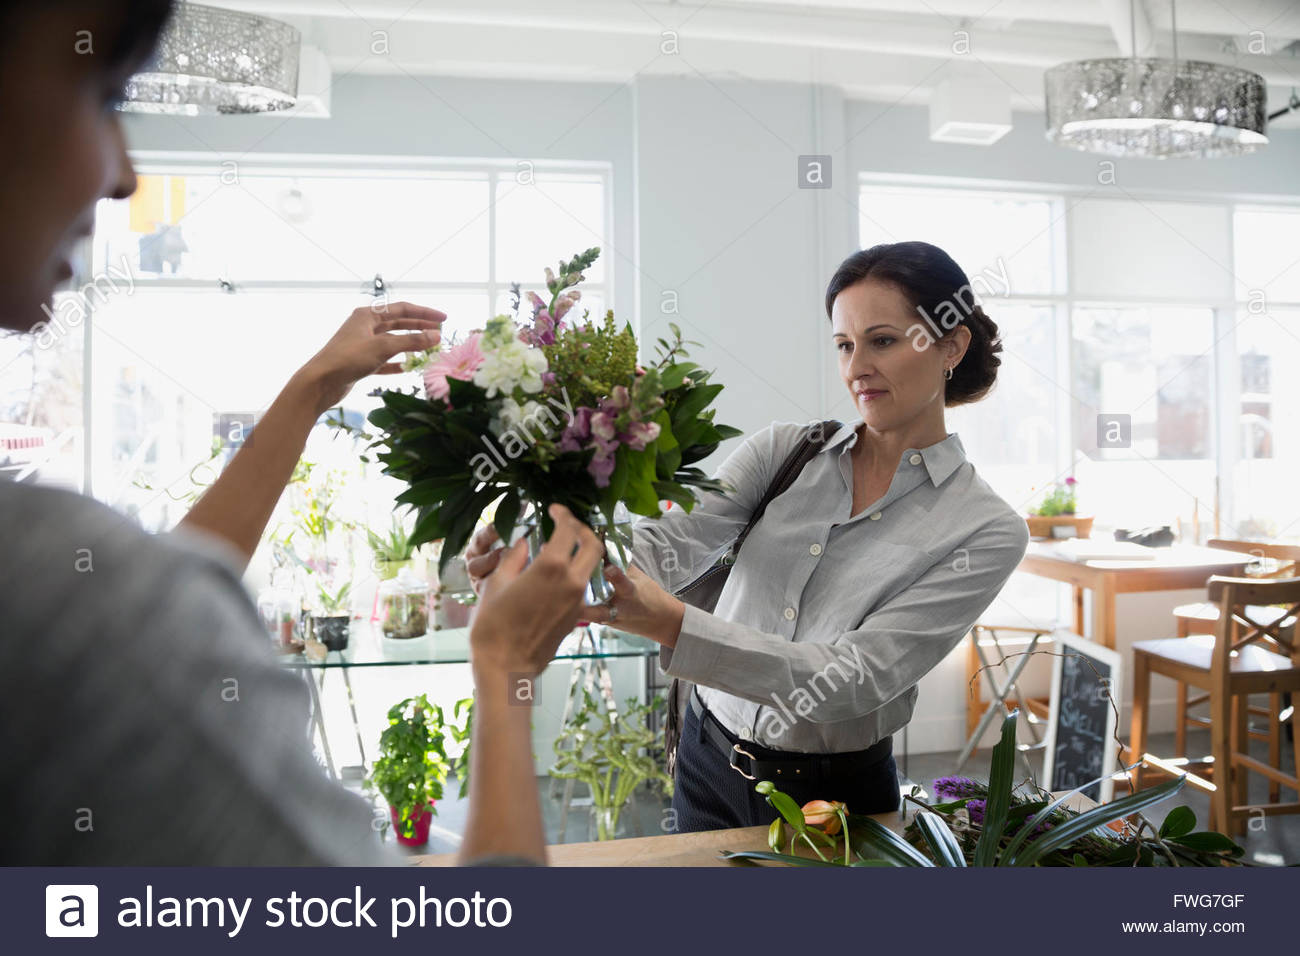 Floors presenting bouquet to customer in flower shop - Stock Image